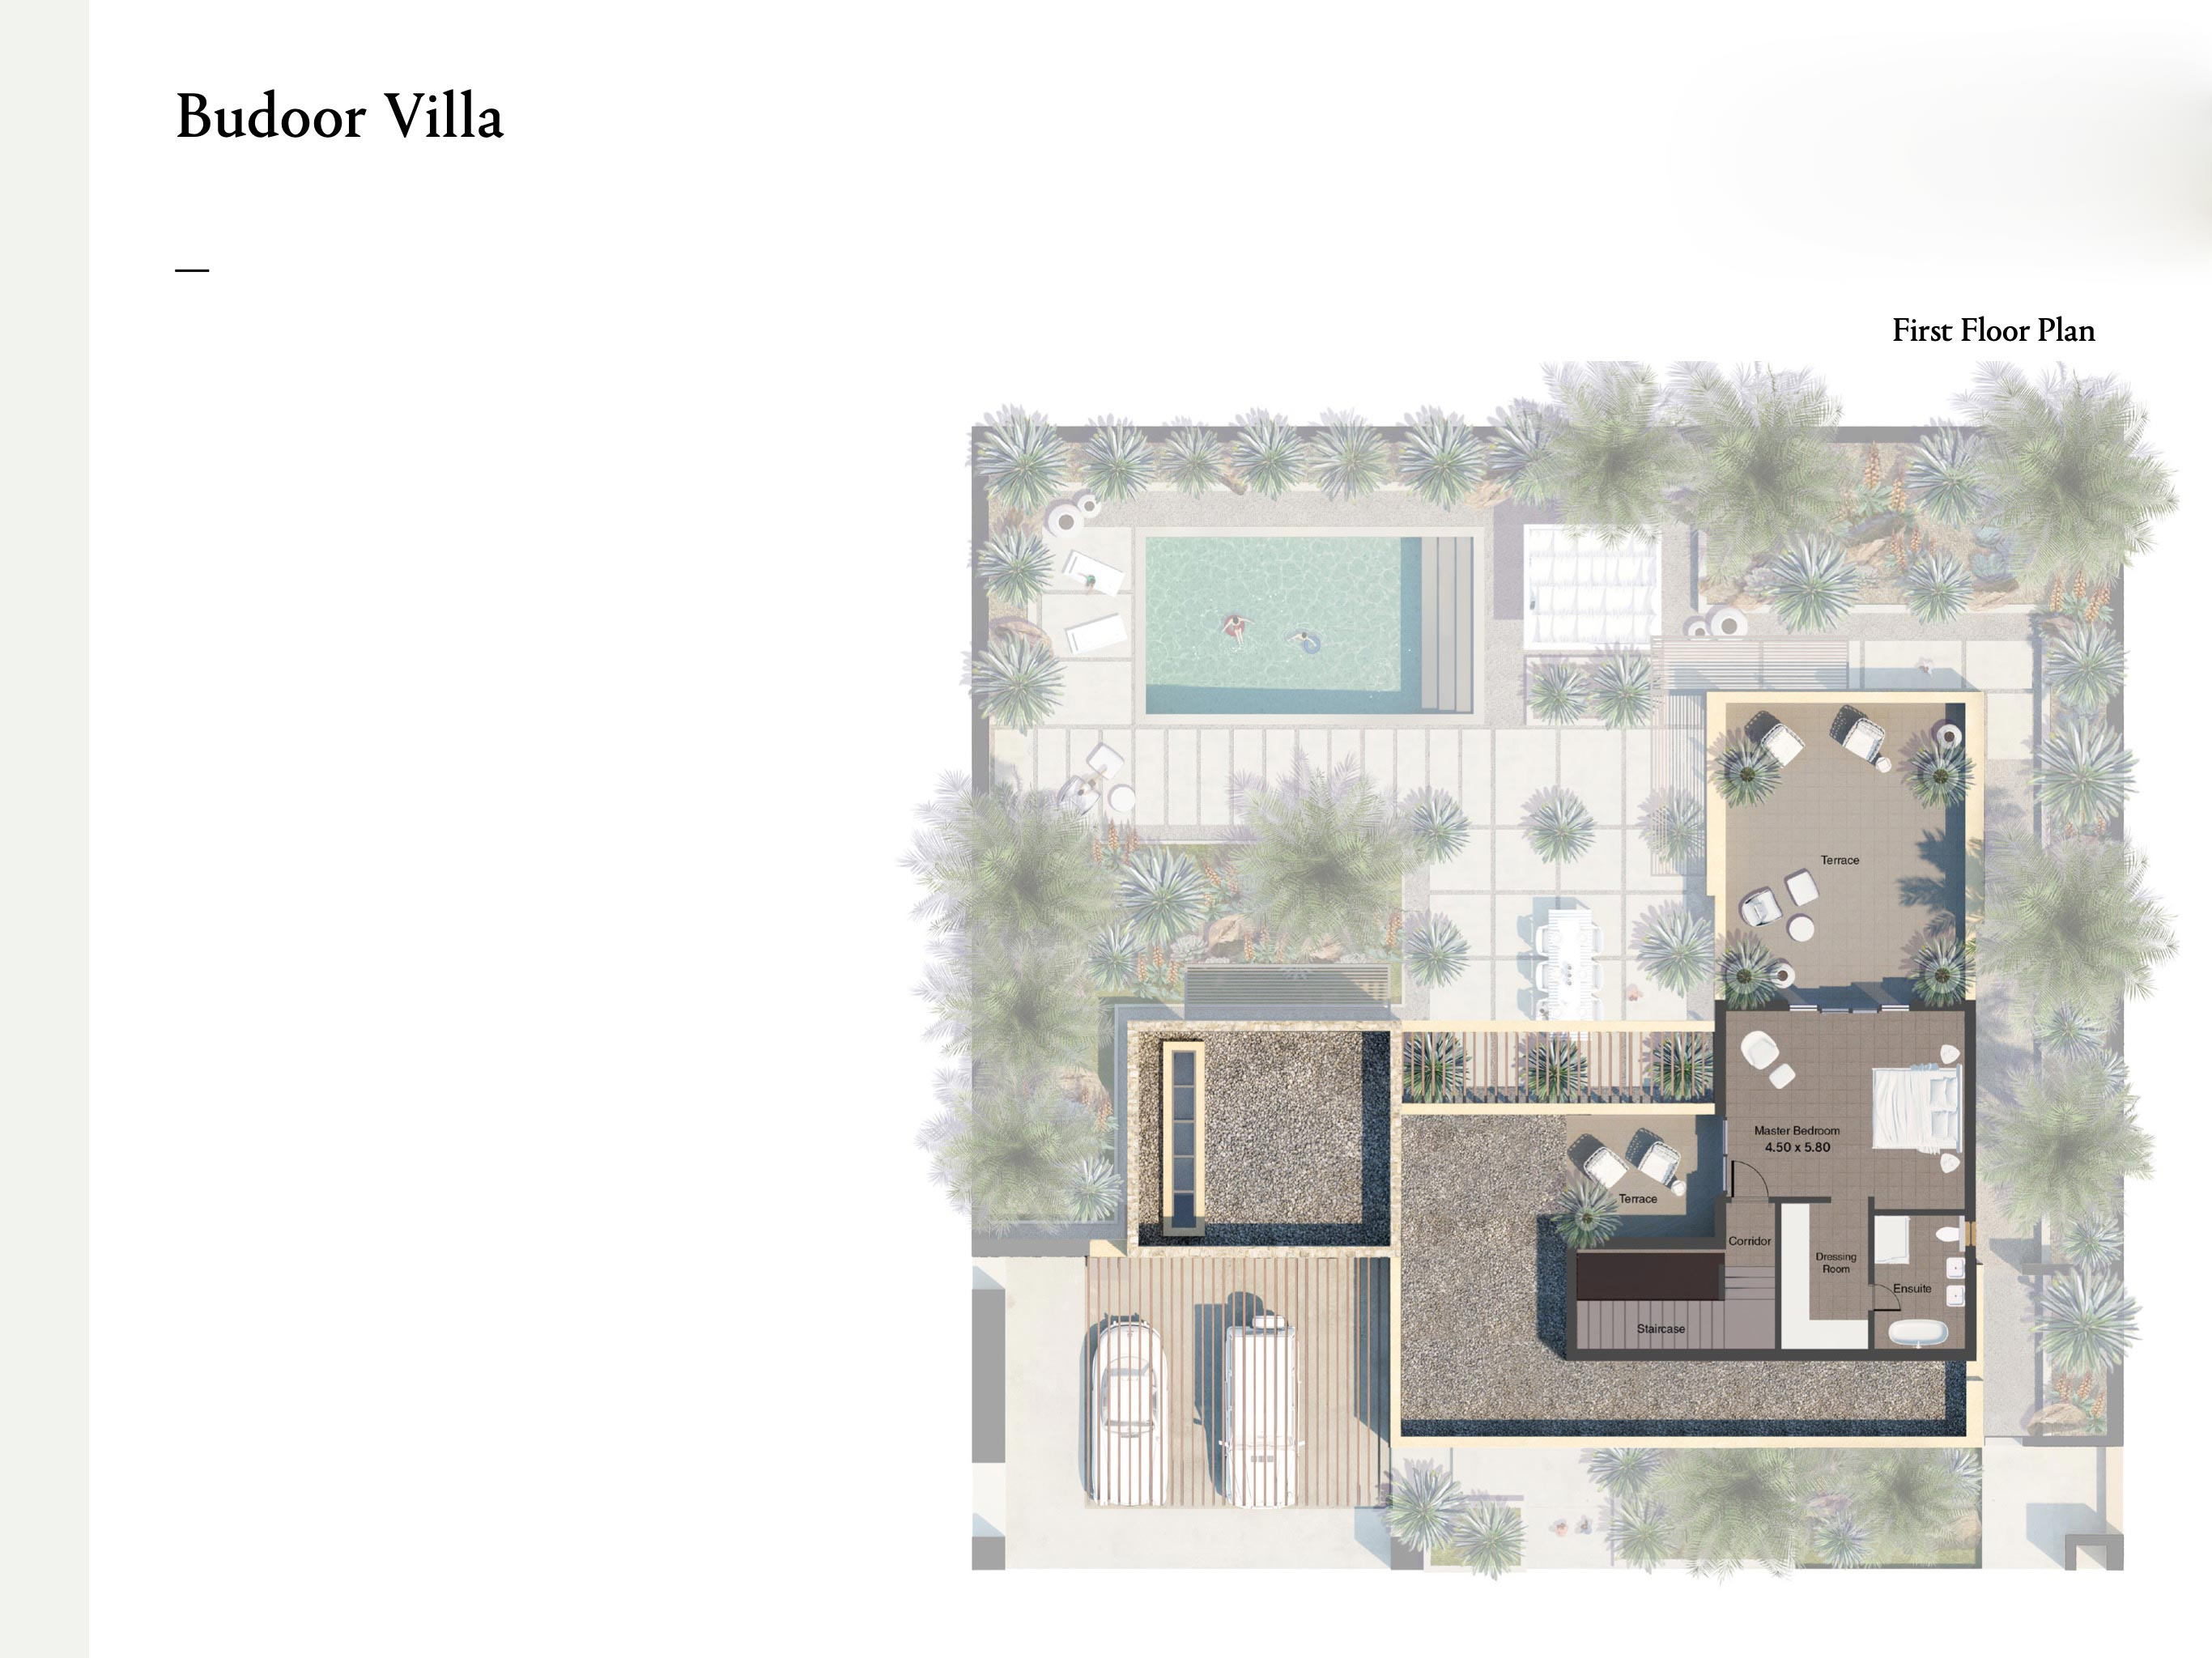 Budoor-Villa-2-Bedroom-Size-303-SQM